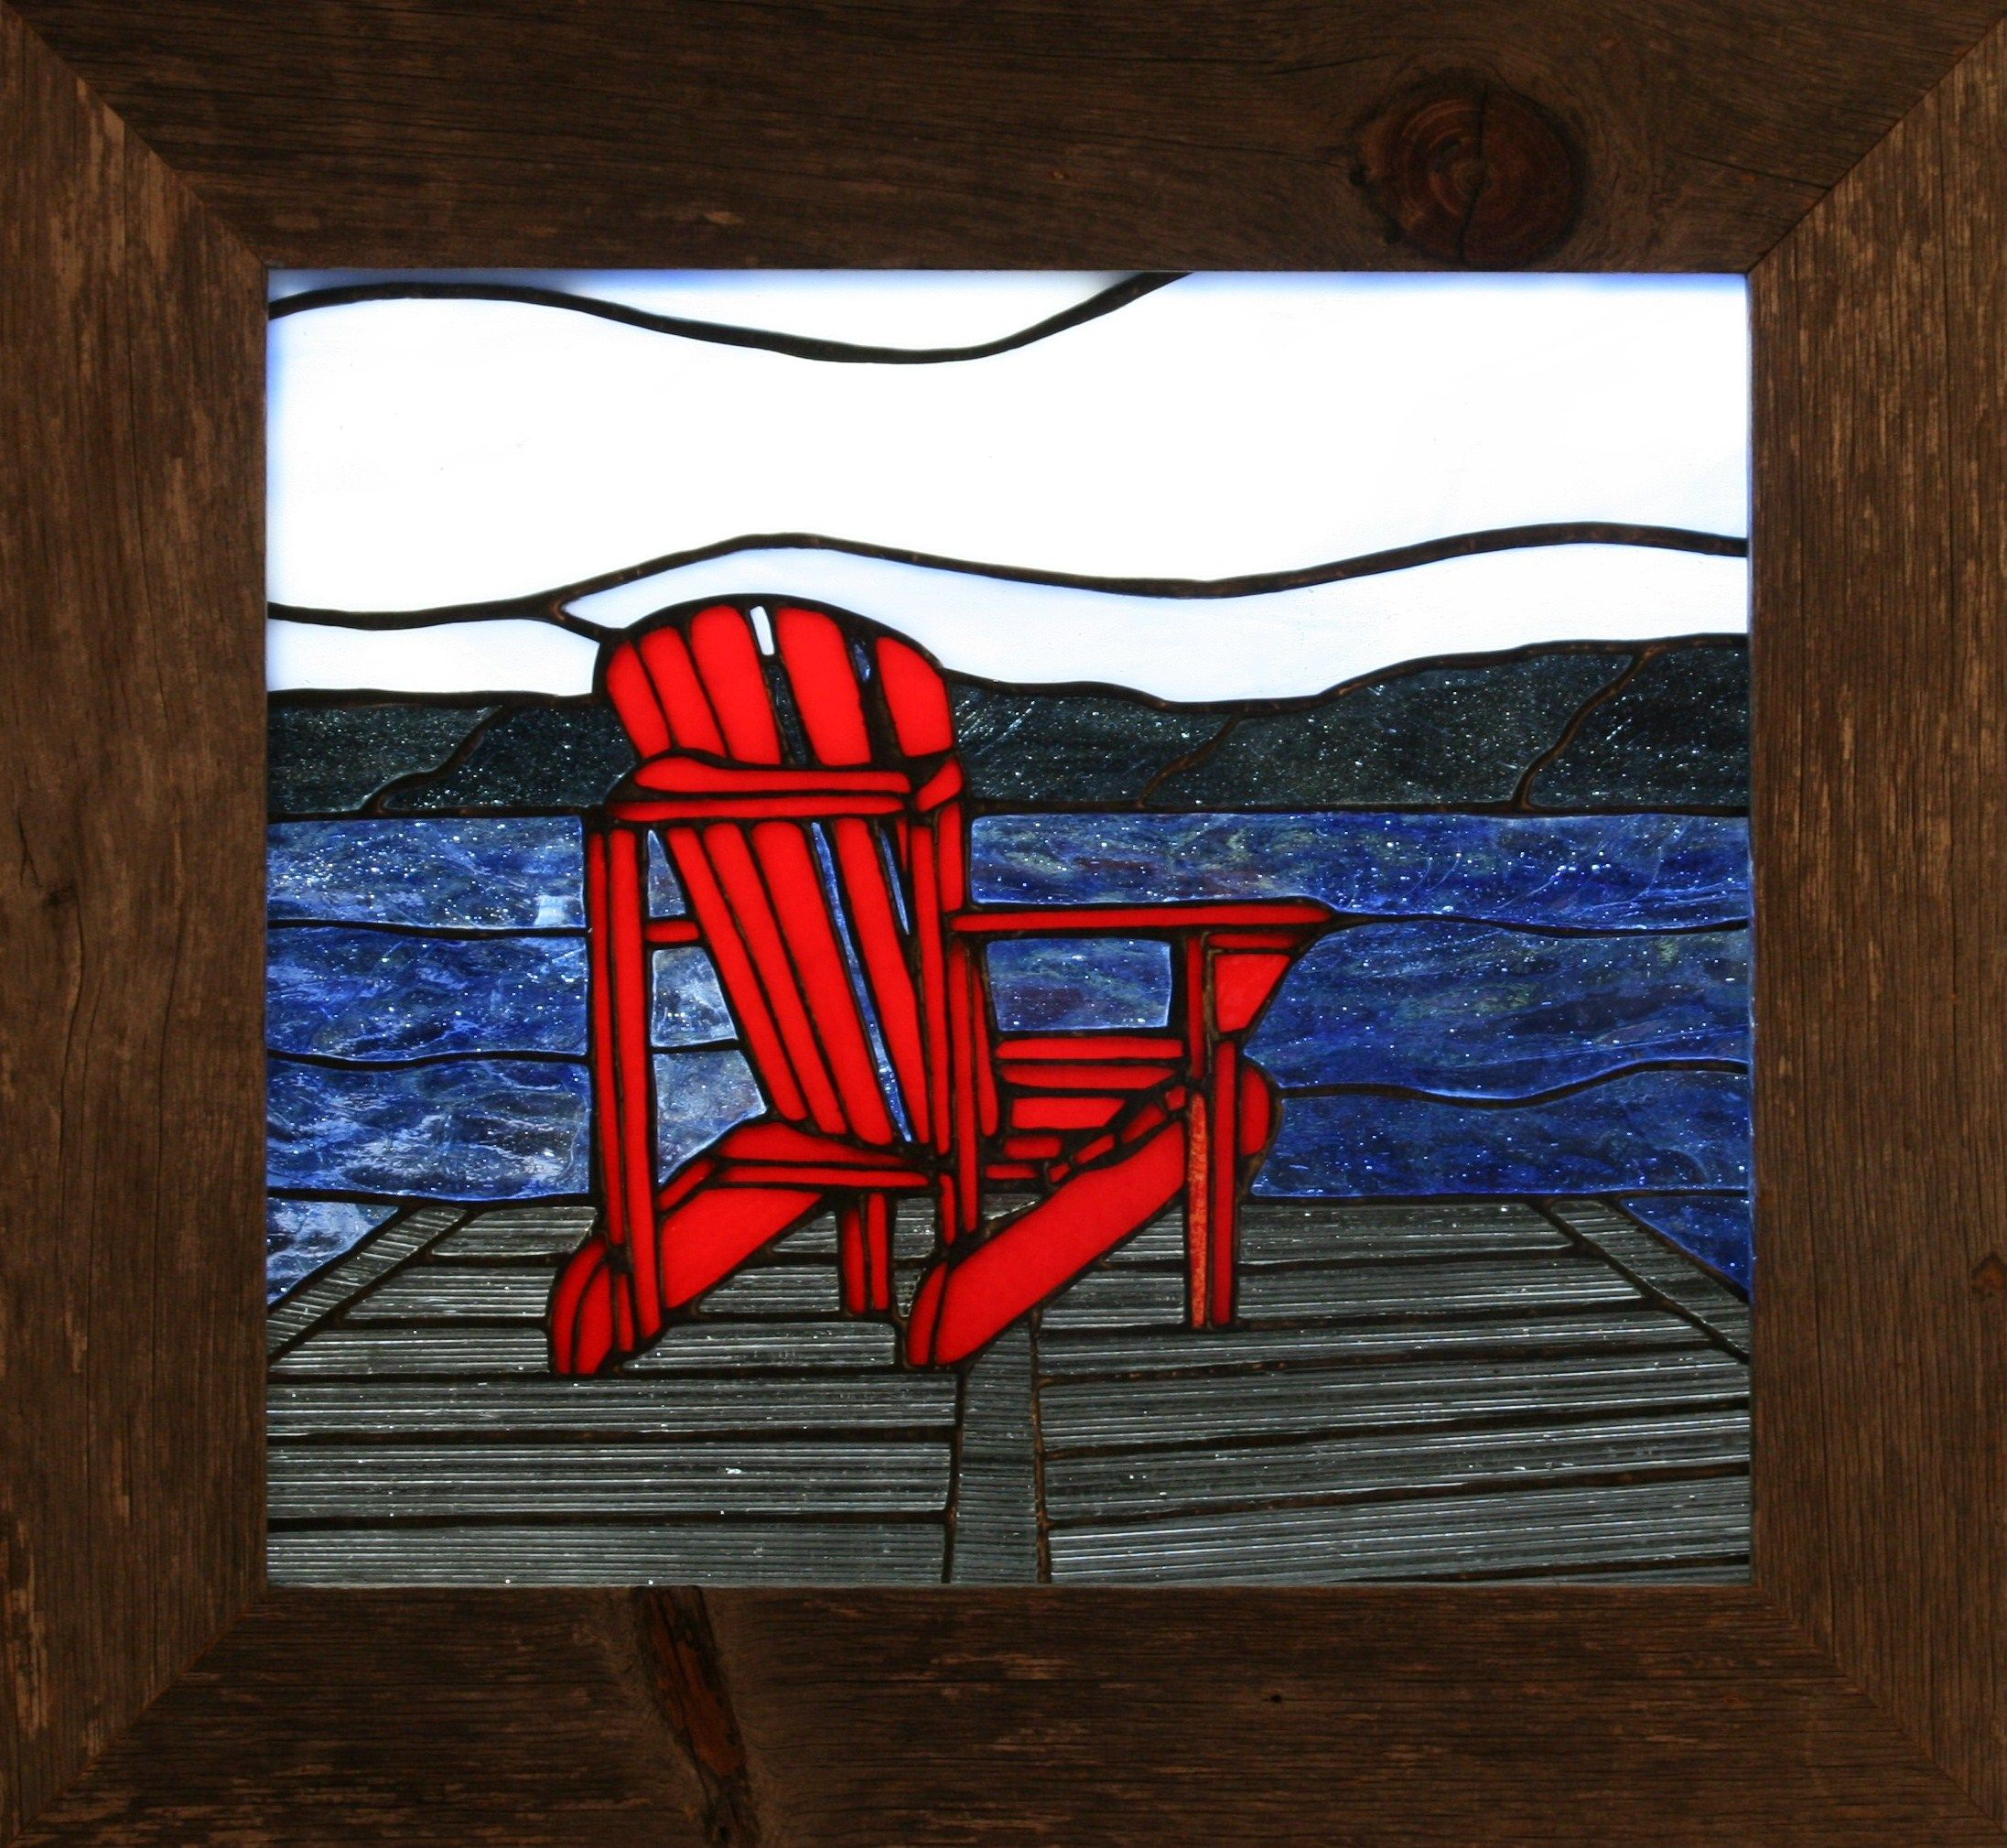 Adirondack chair on edge of dock Stained glass patterns